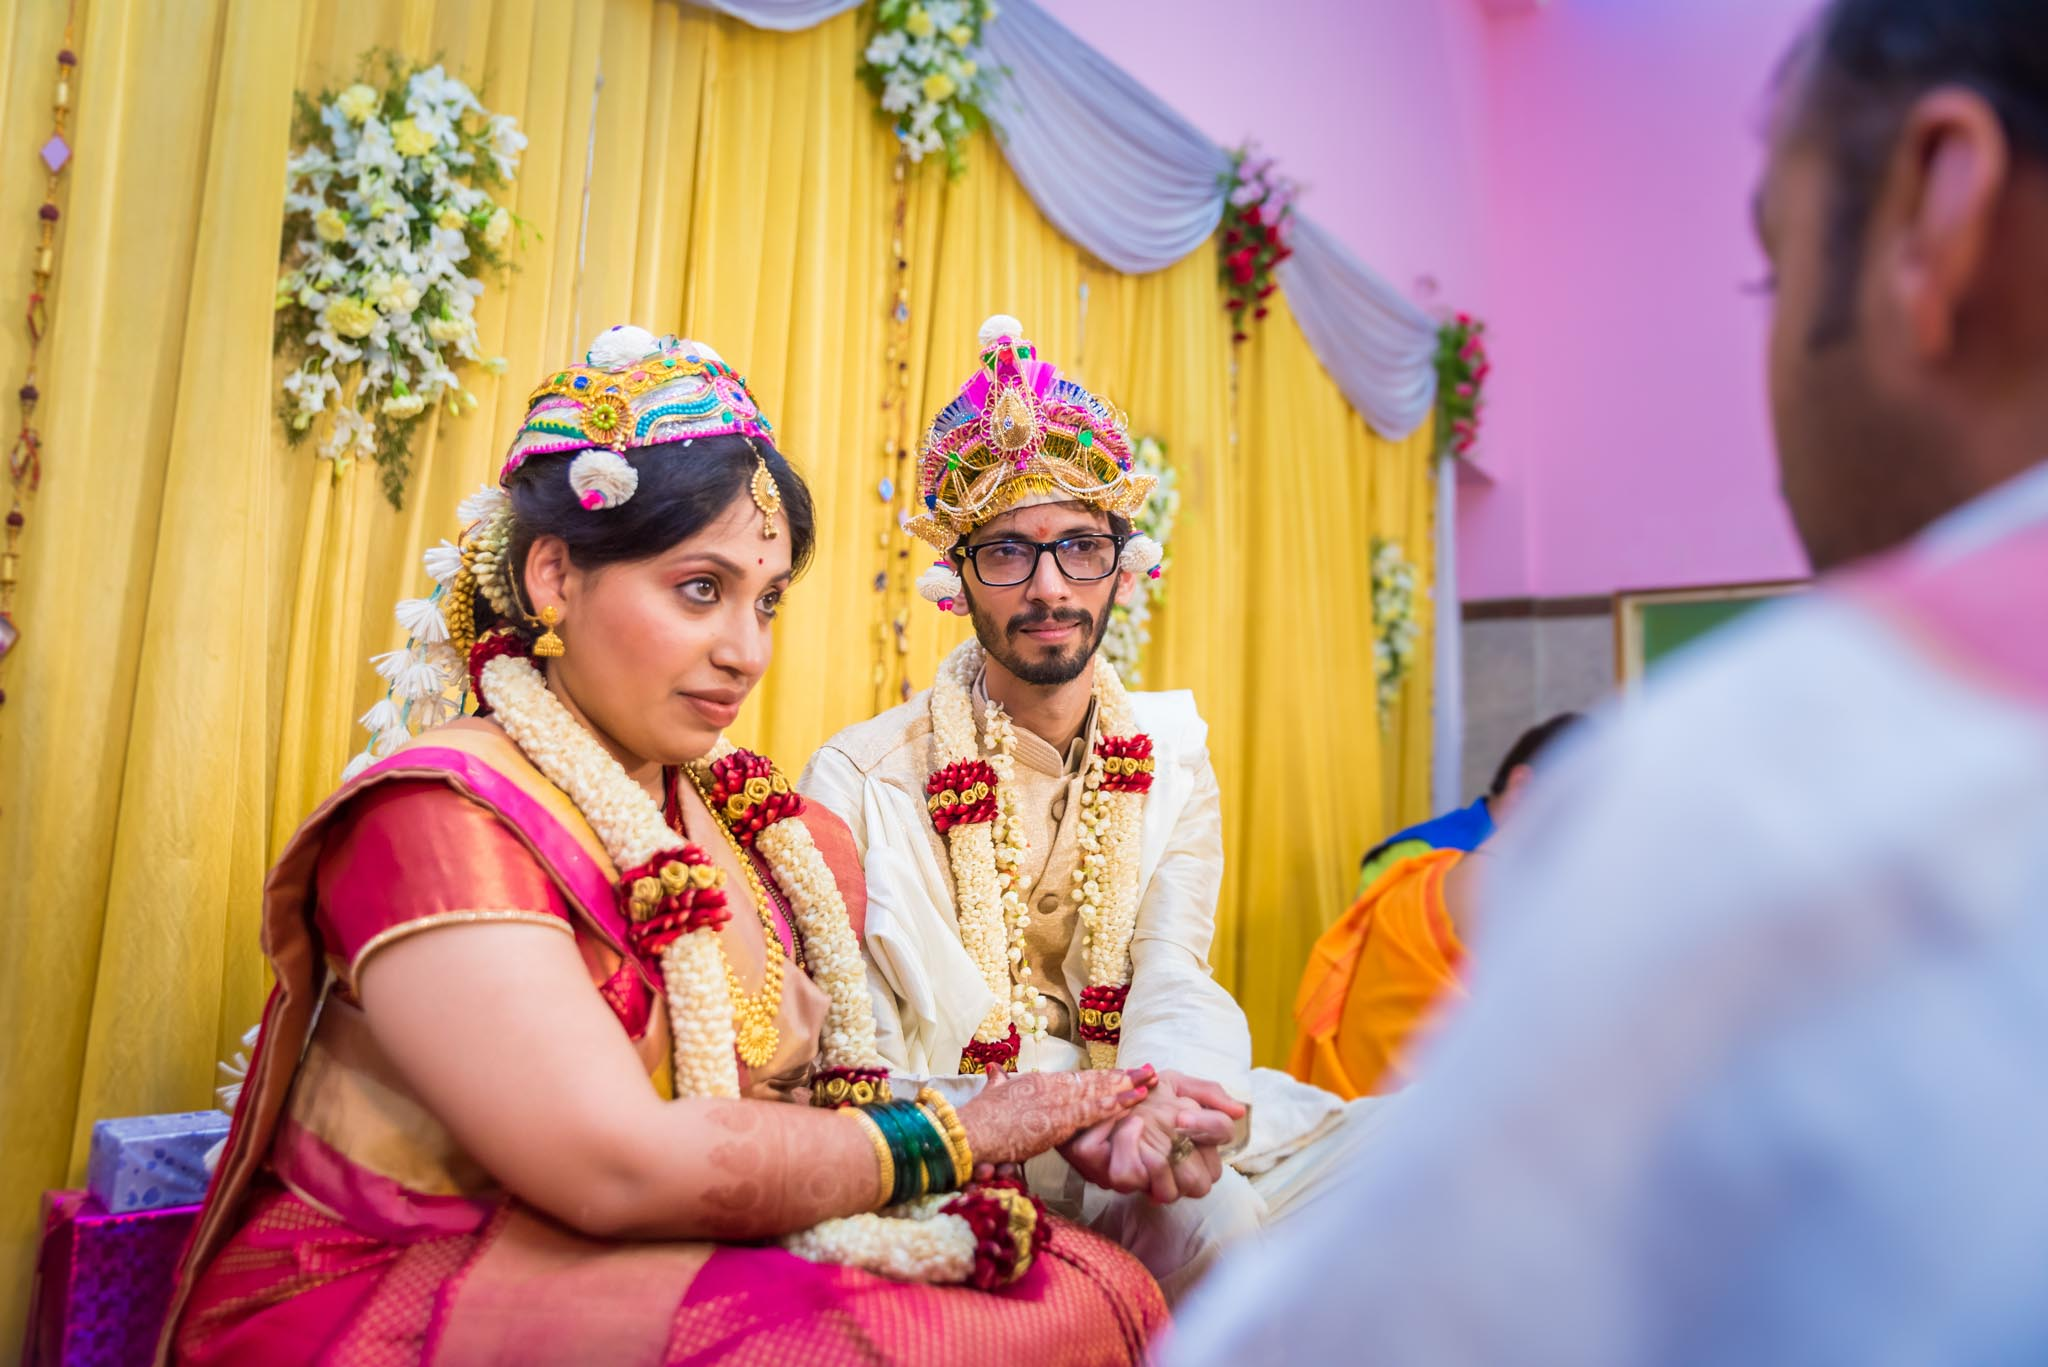 WhatKnot-Candid-Wedding-Photography-Mumbai-Bangalore-186